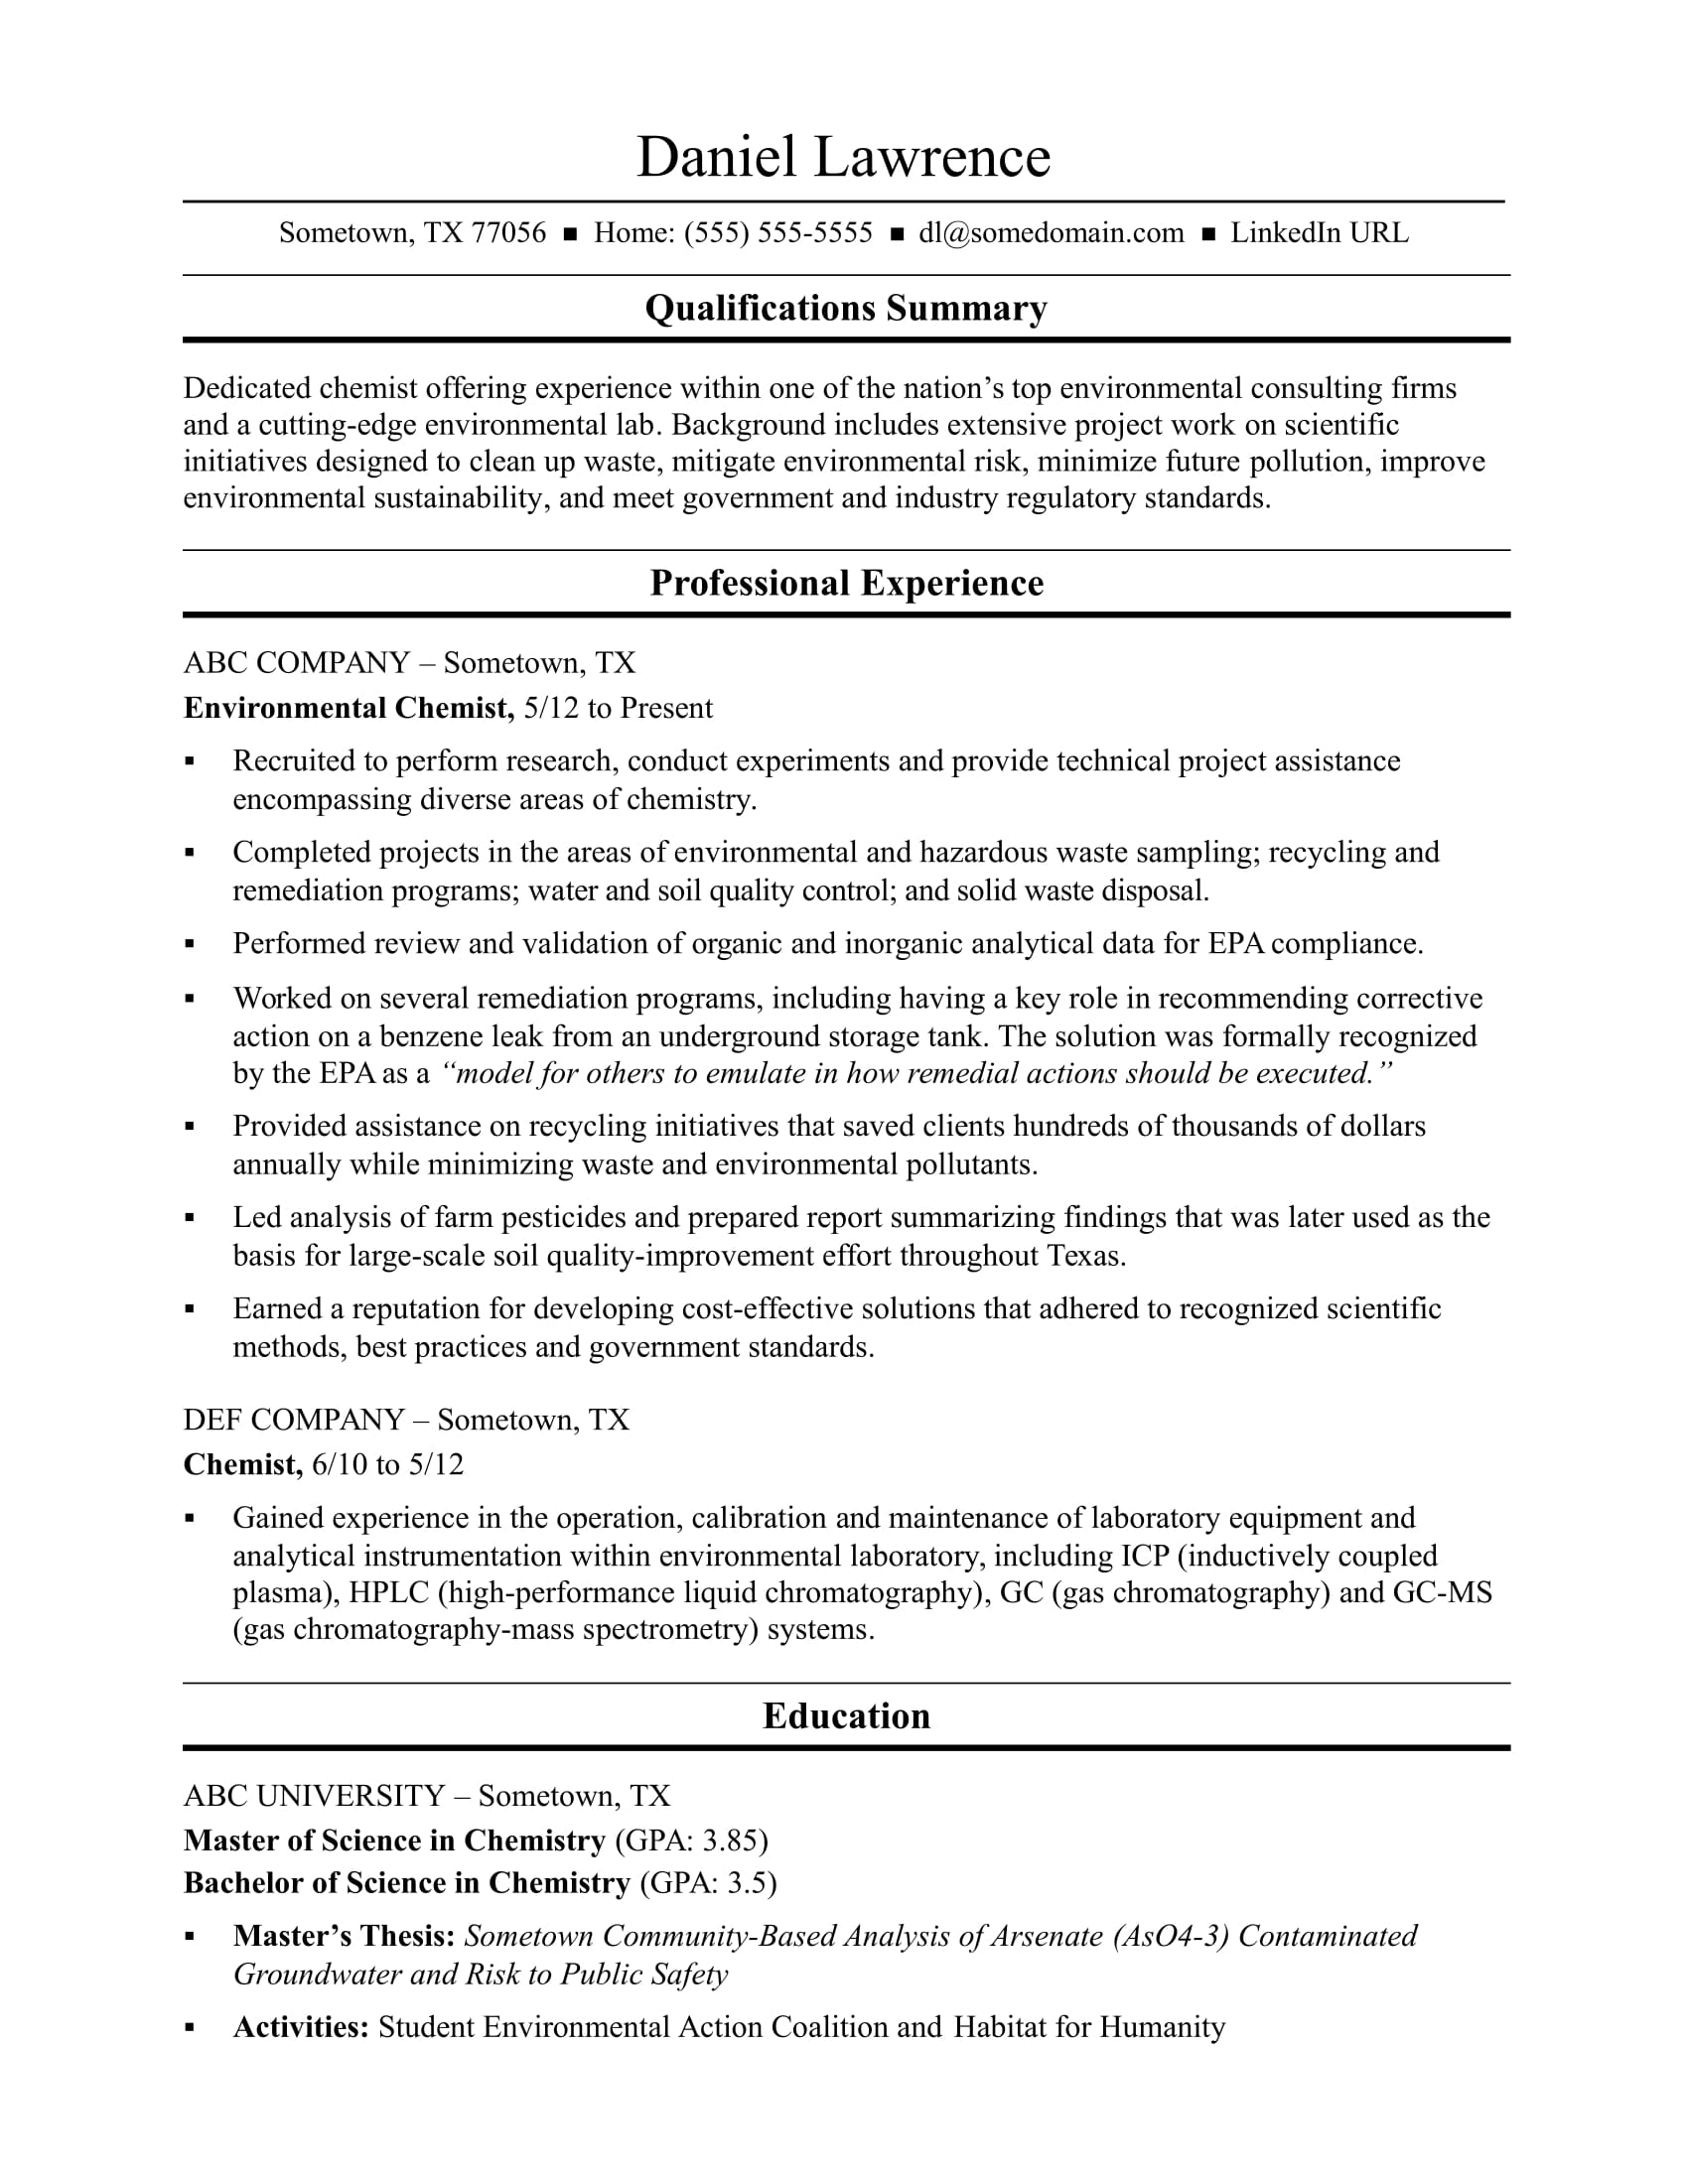 sample resume for a midlevel chemist - Help Creating A Resume